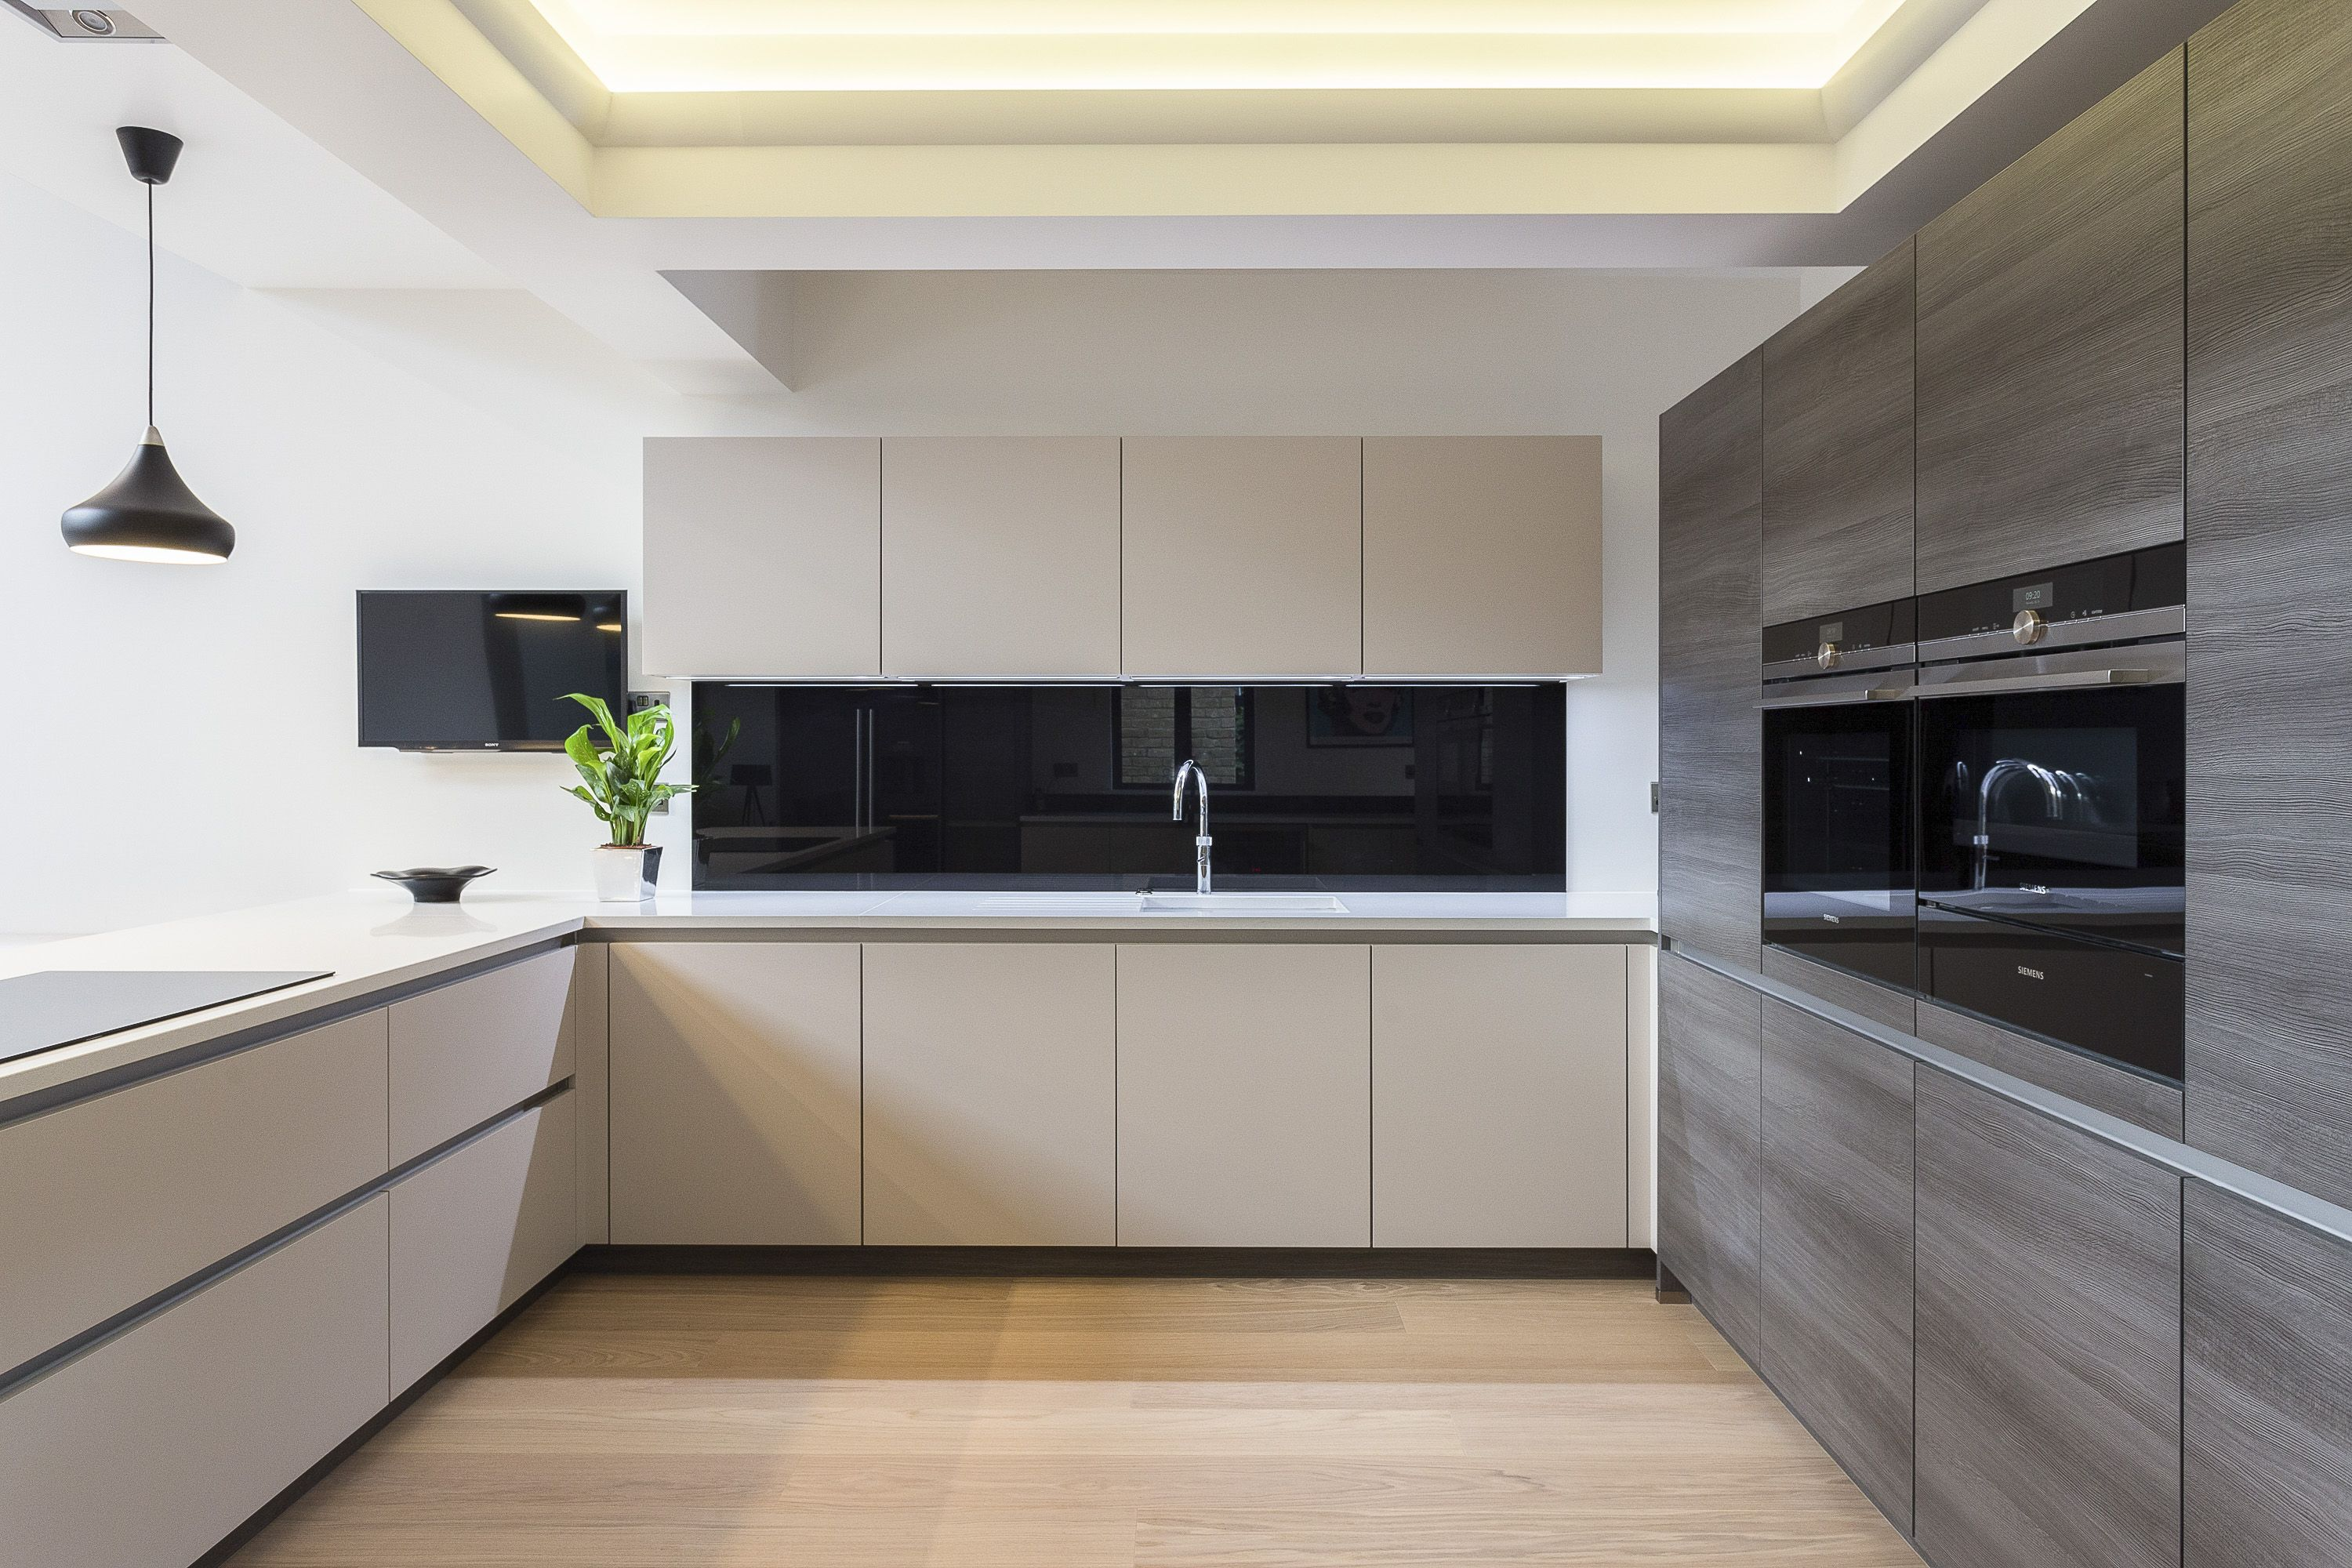 Küchenerweiterung Nolte ~ modern handleless nolte kitchen in feel and manhatten ranges this ultra modern and sleek